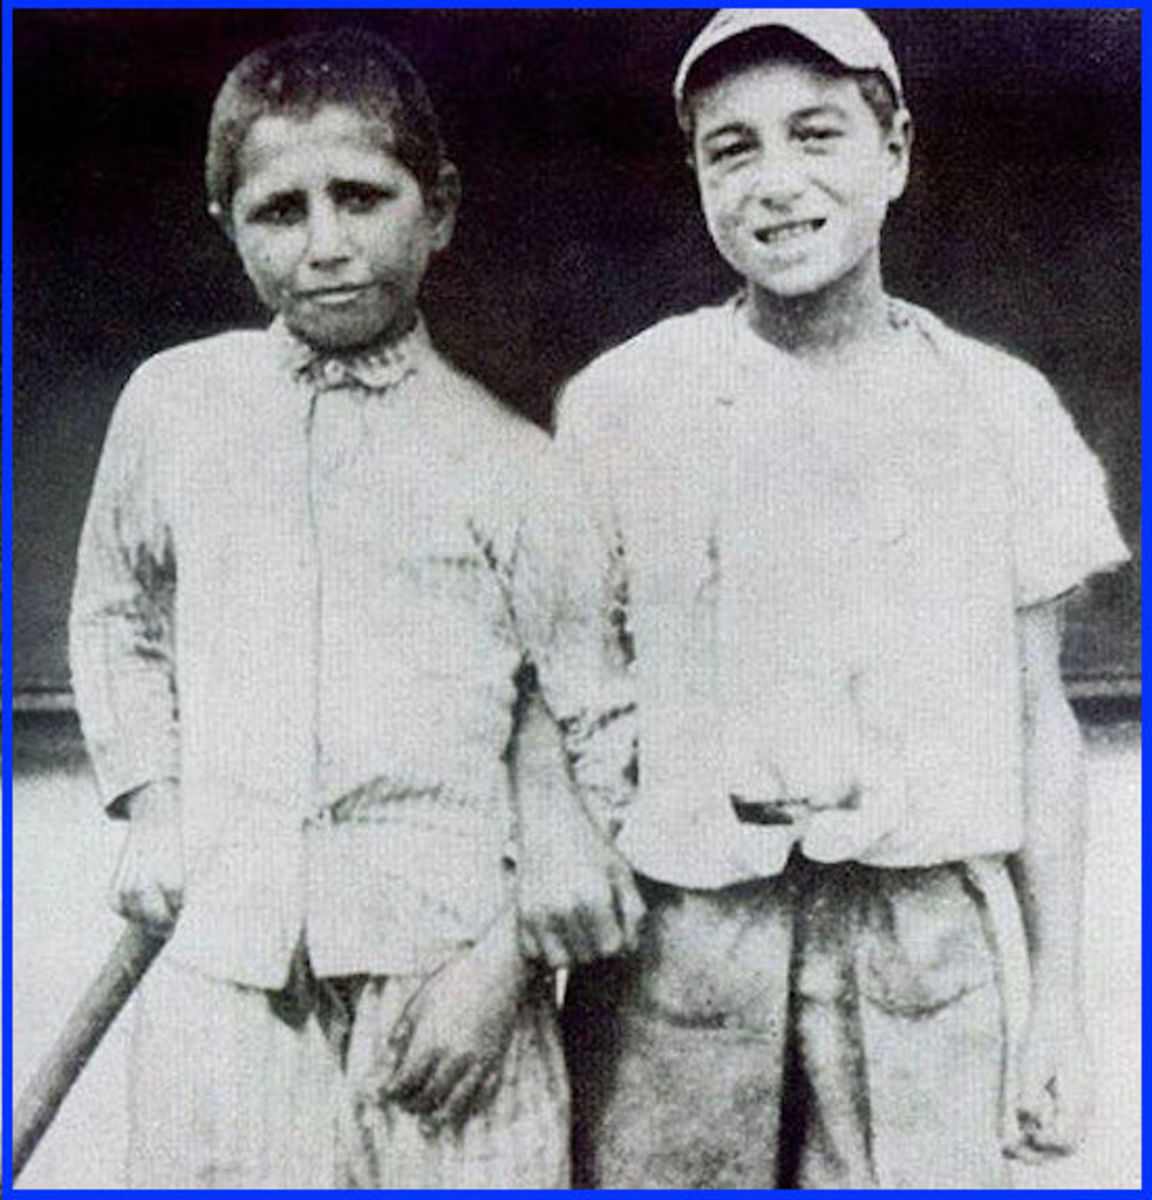 Here's Babe Ruth (on the right) at age seven, shortly after entering St. Mary's Industrial School for Boys.